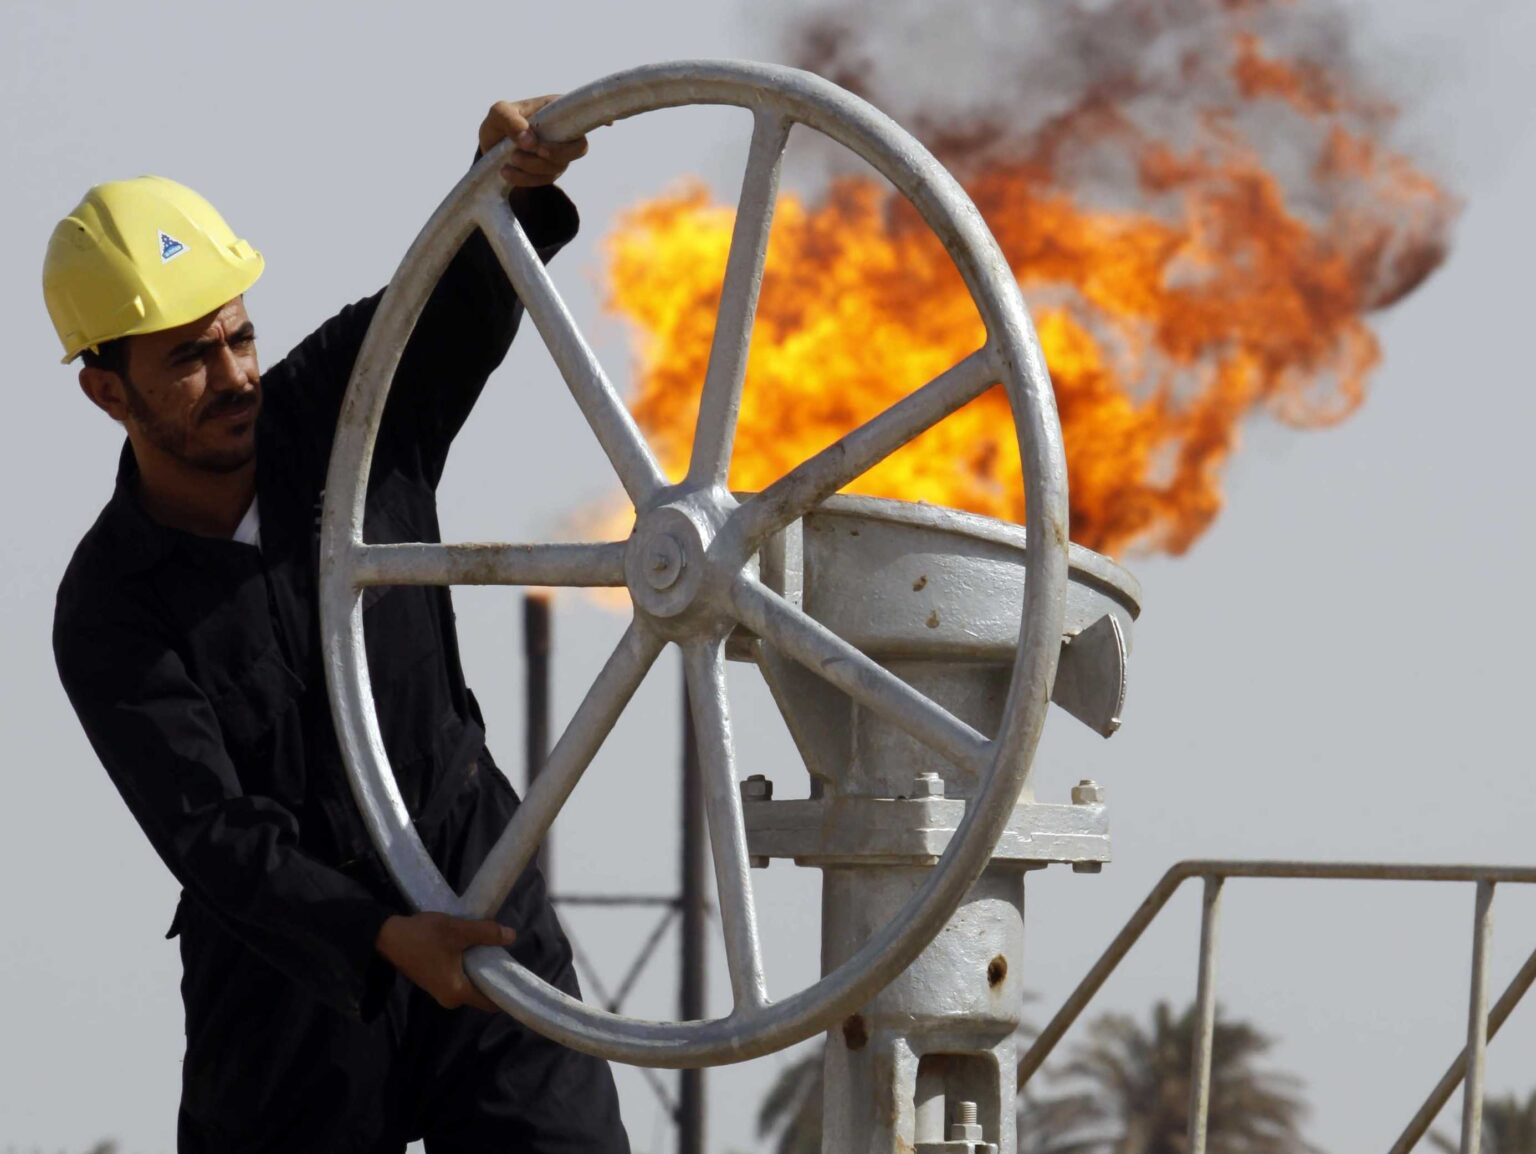 The Iraqi Ministry of Oil said that oil exports increased in December 2020.